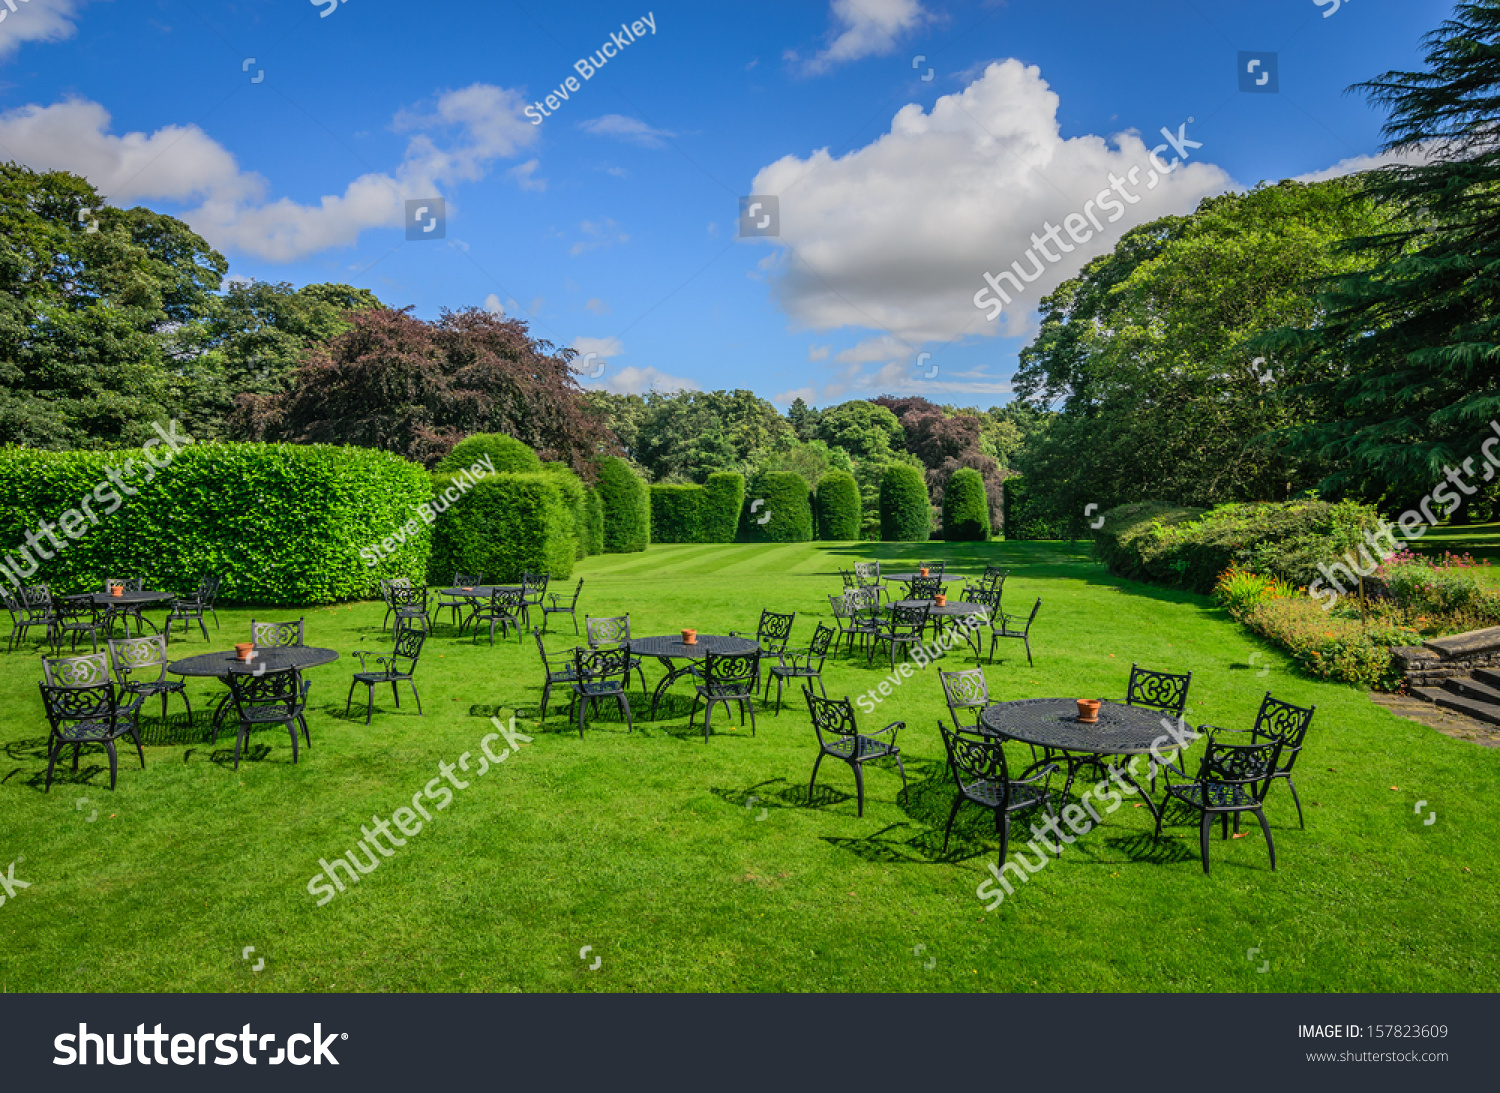 Communication on this topic: How to Set up an English Garden, how-to-set-up-an-english-garden/